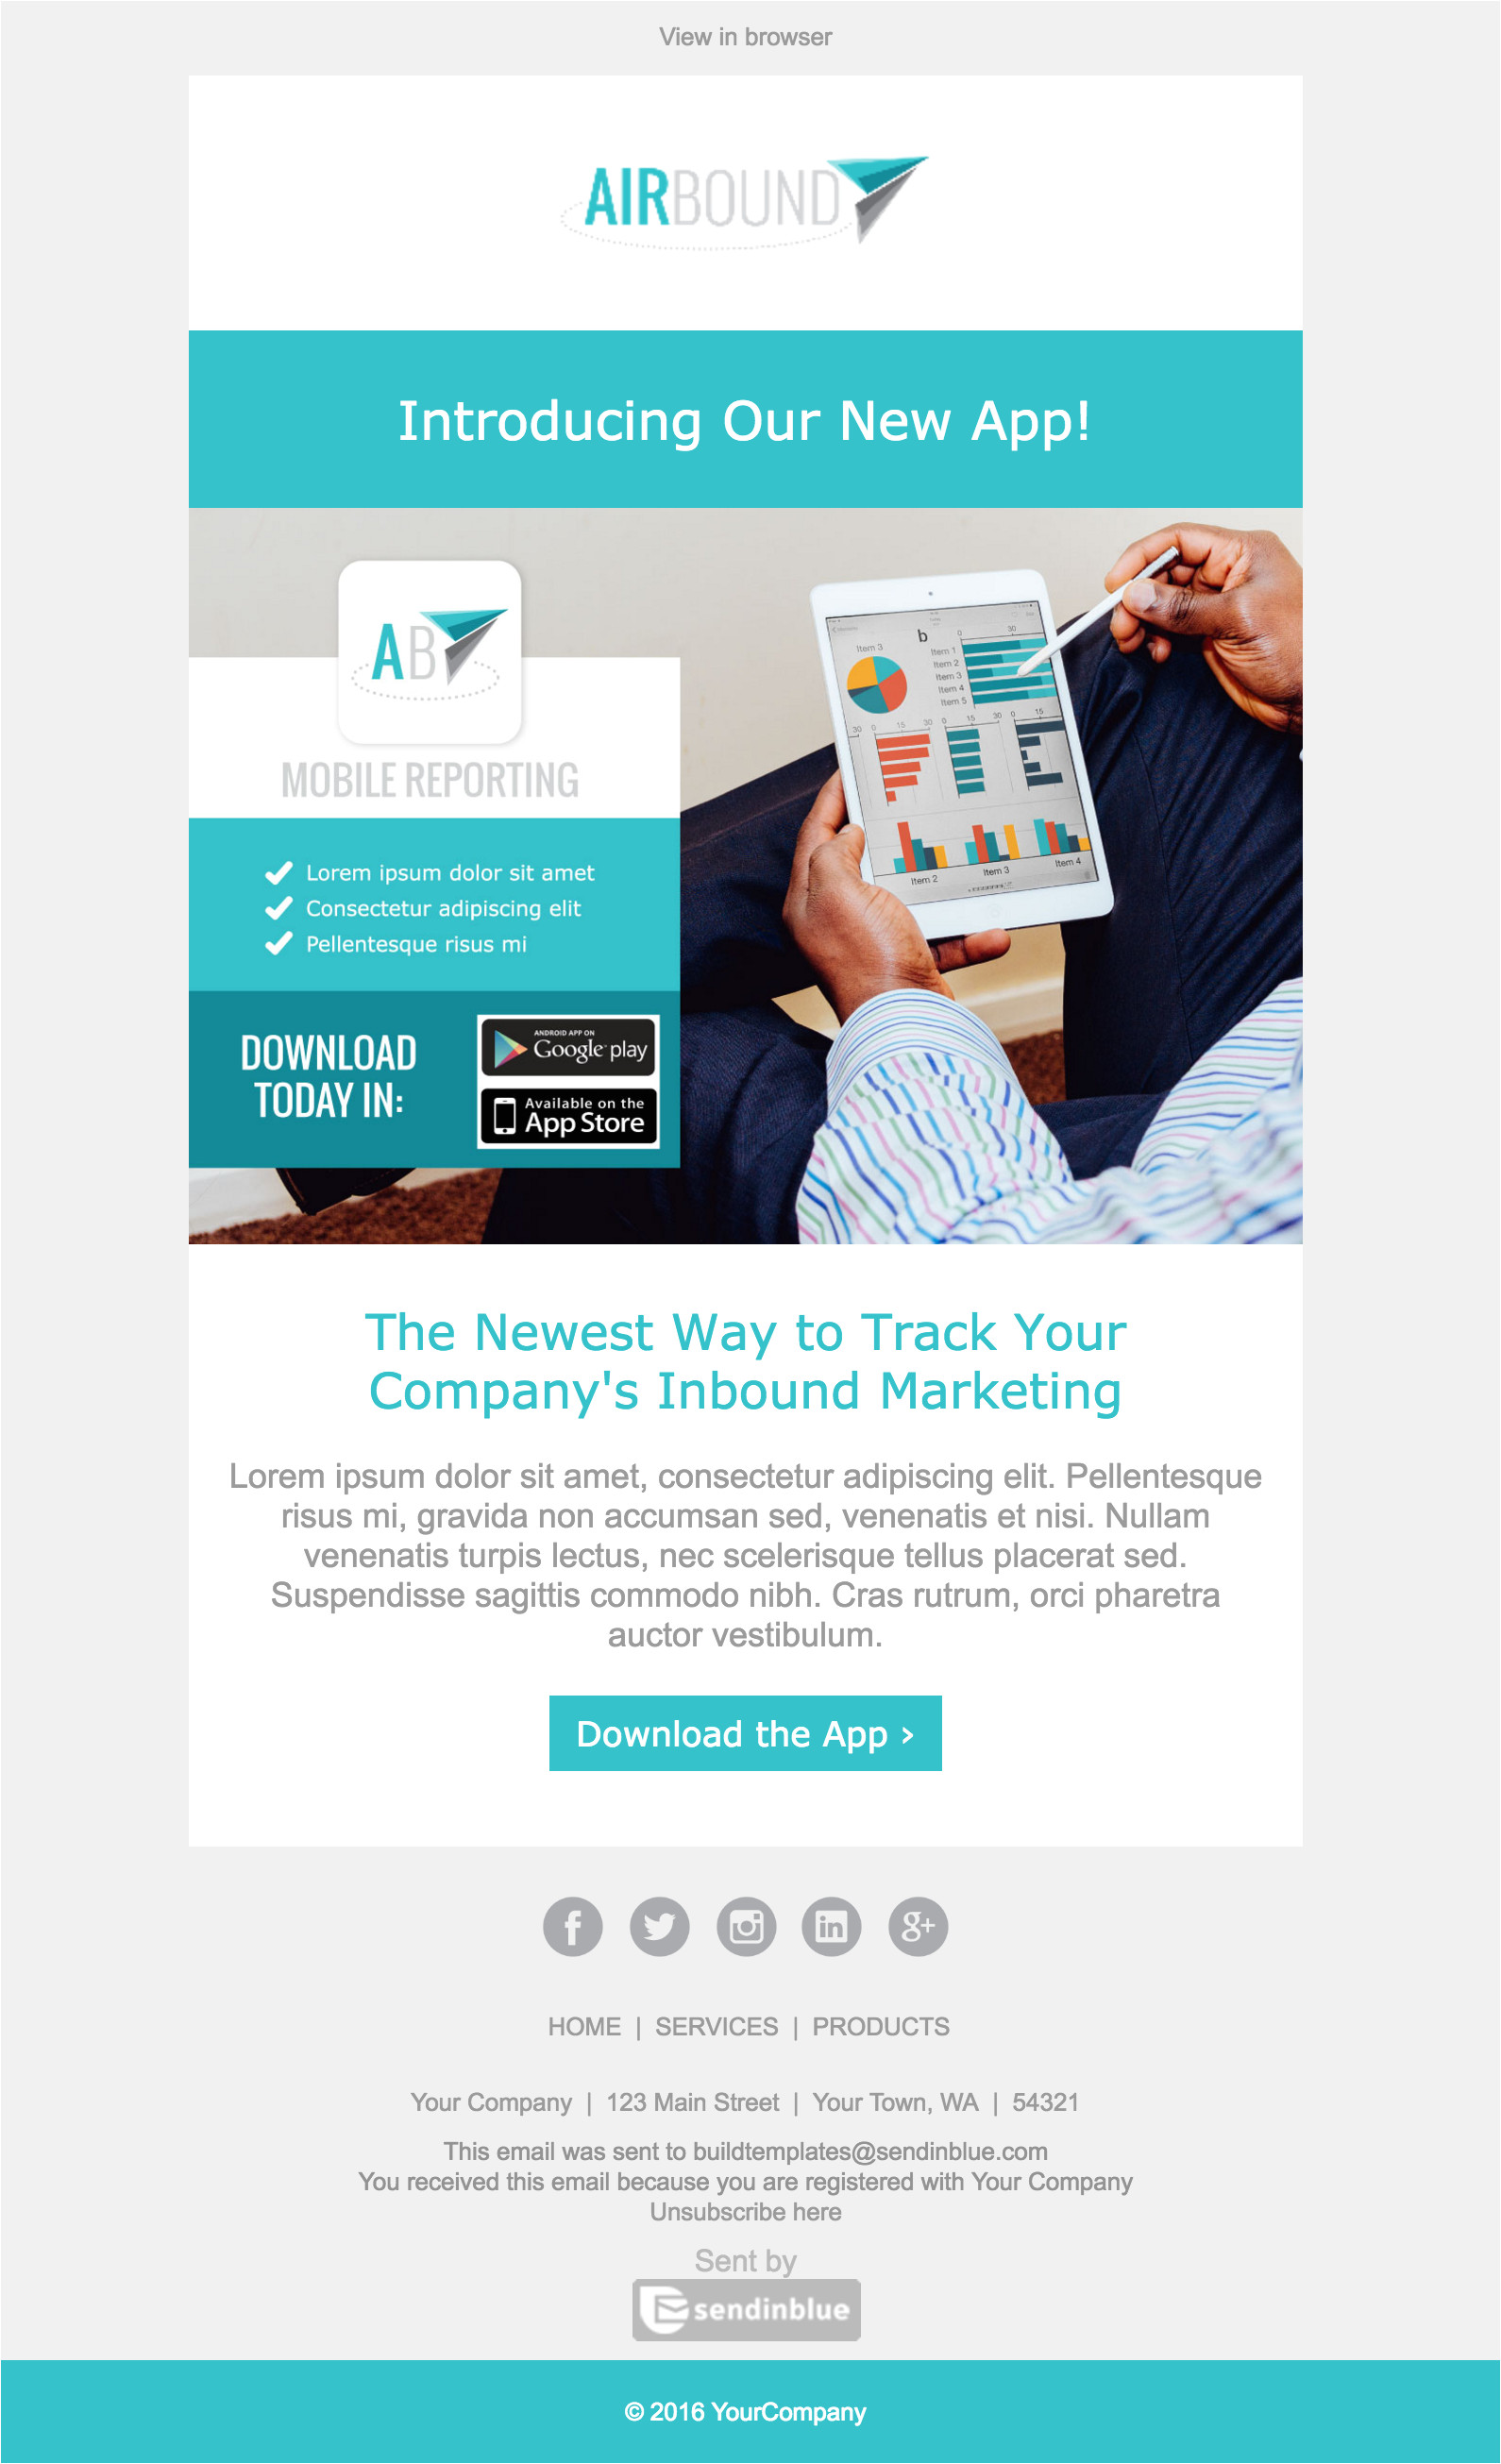 New Website Announcement Email Template top 8 B2b Email Templates for Marketers In 2017